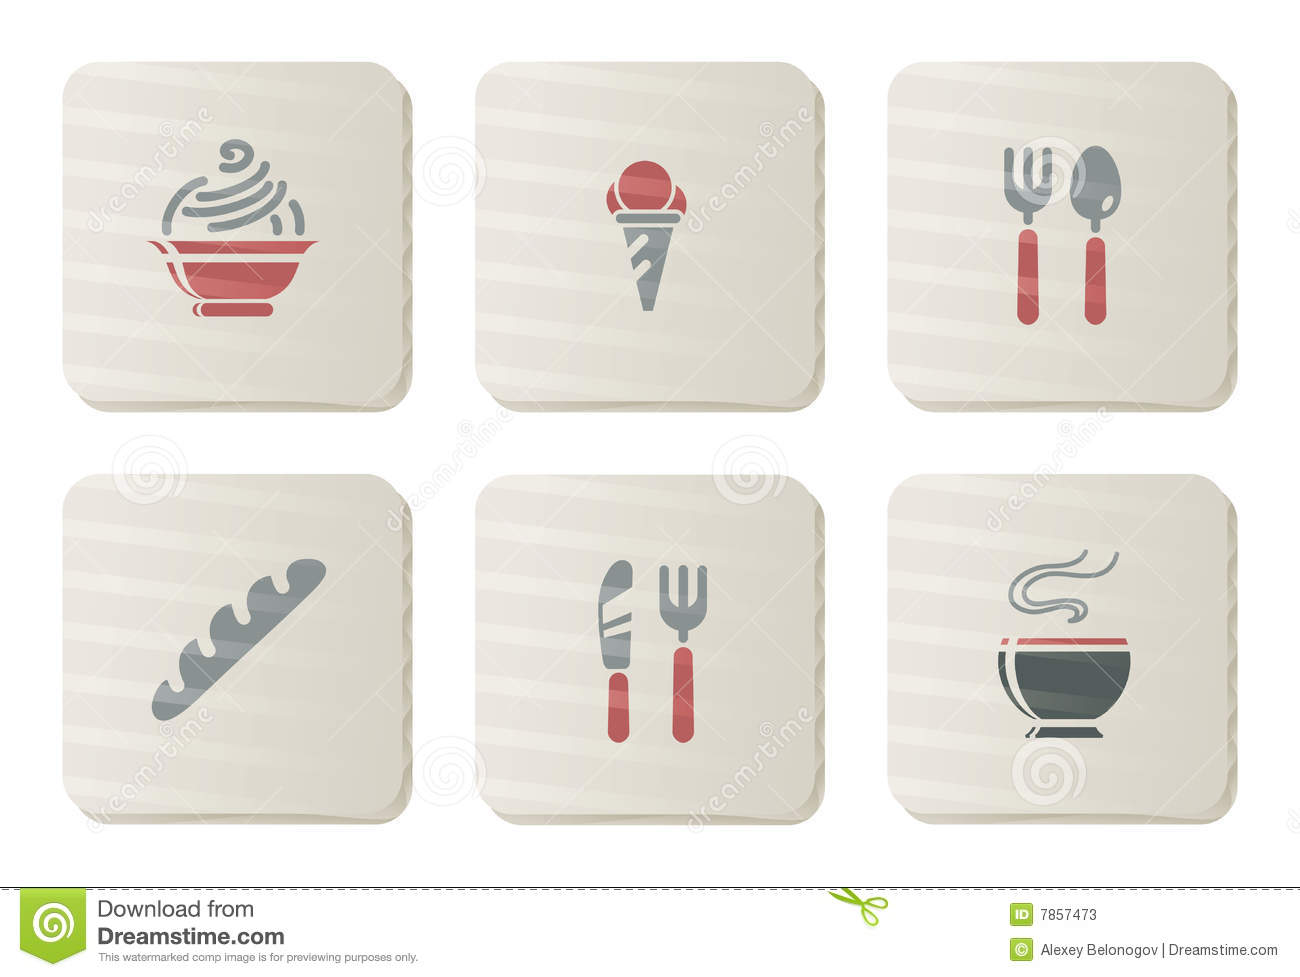 Food and Restaurant icons | Cardboard series